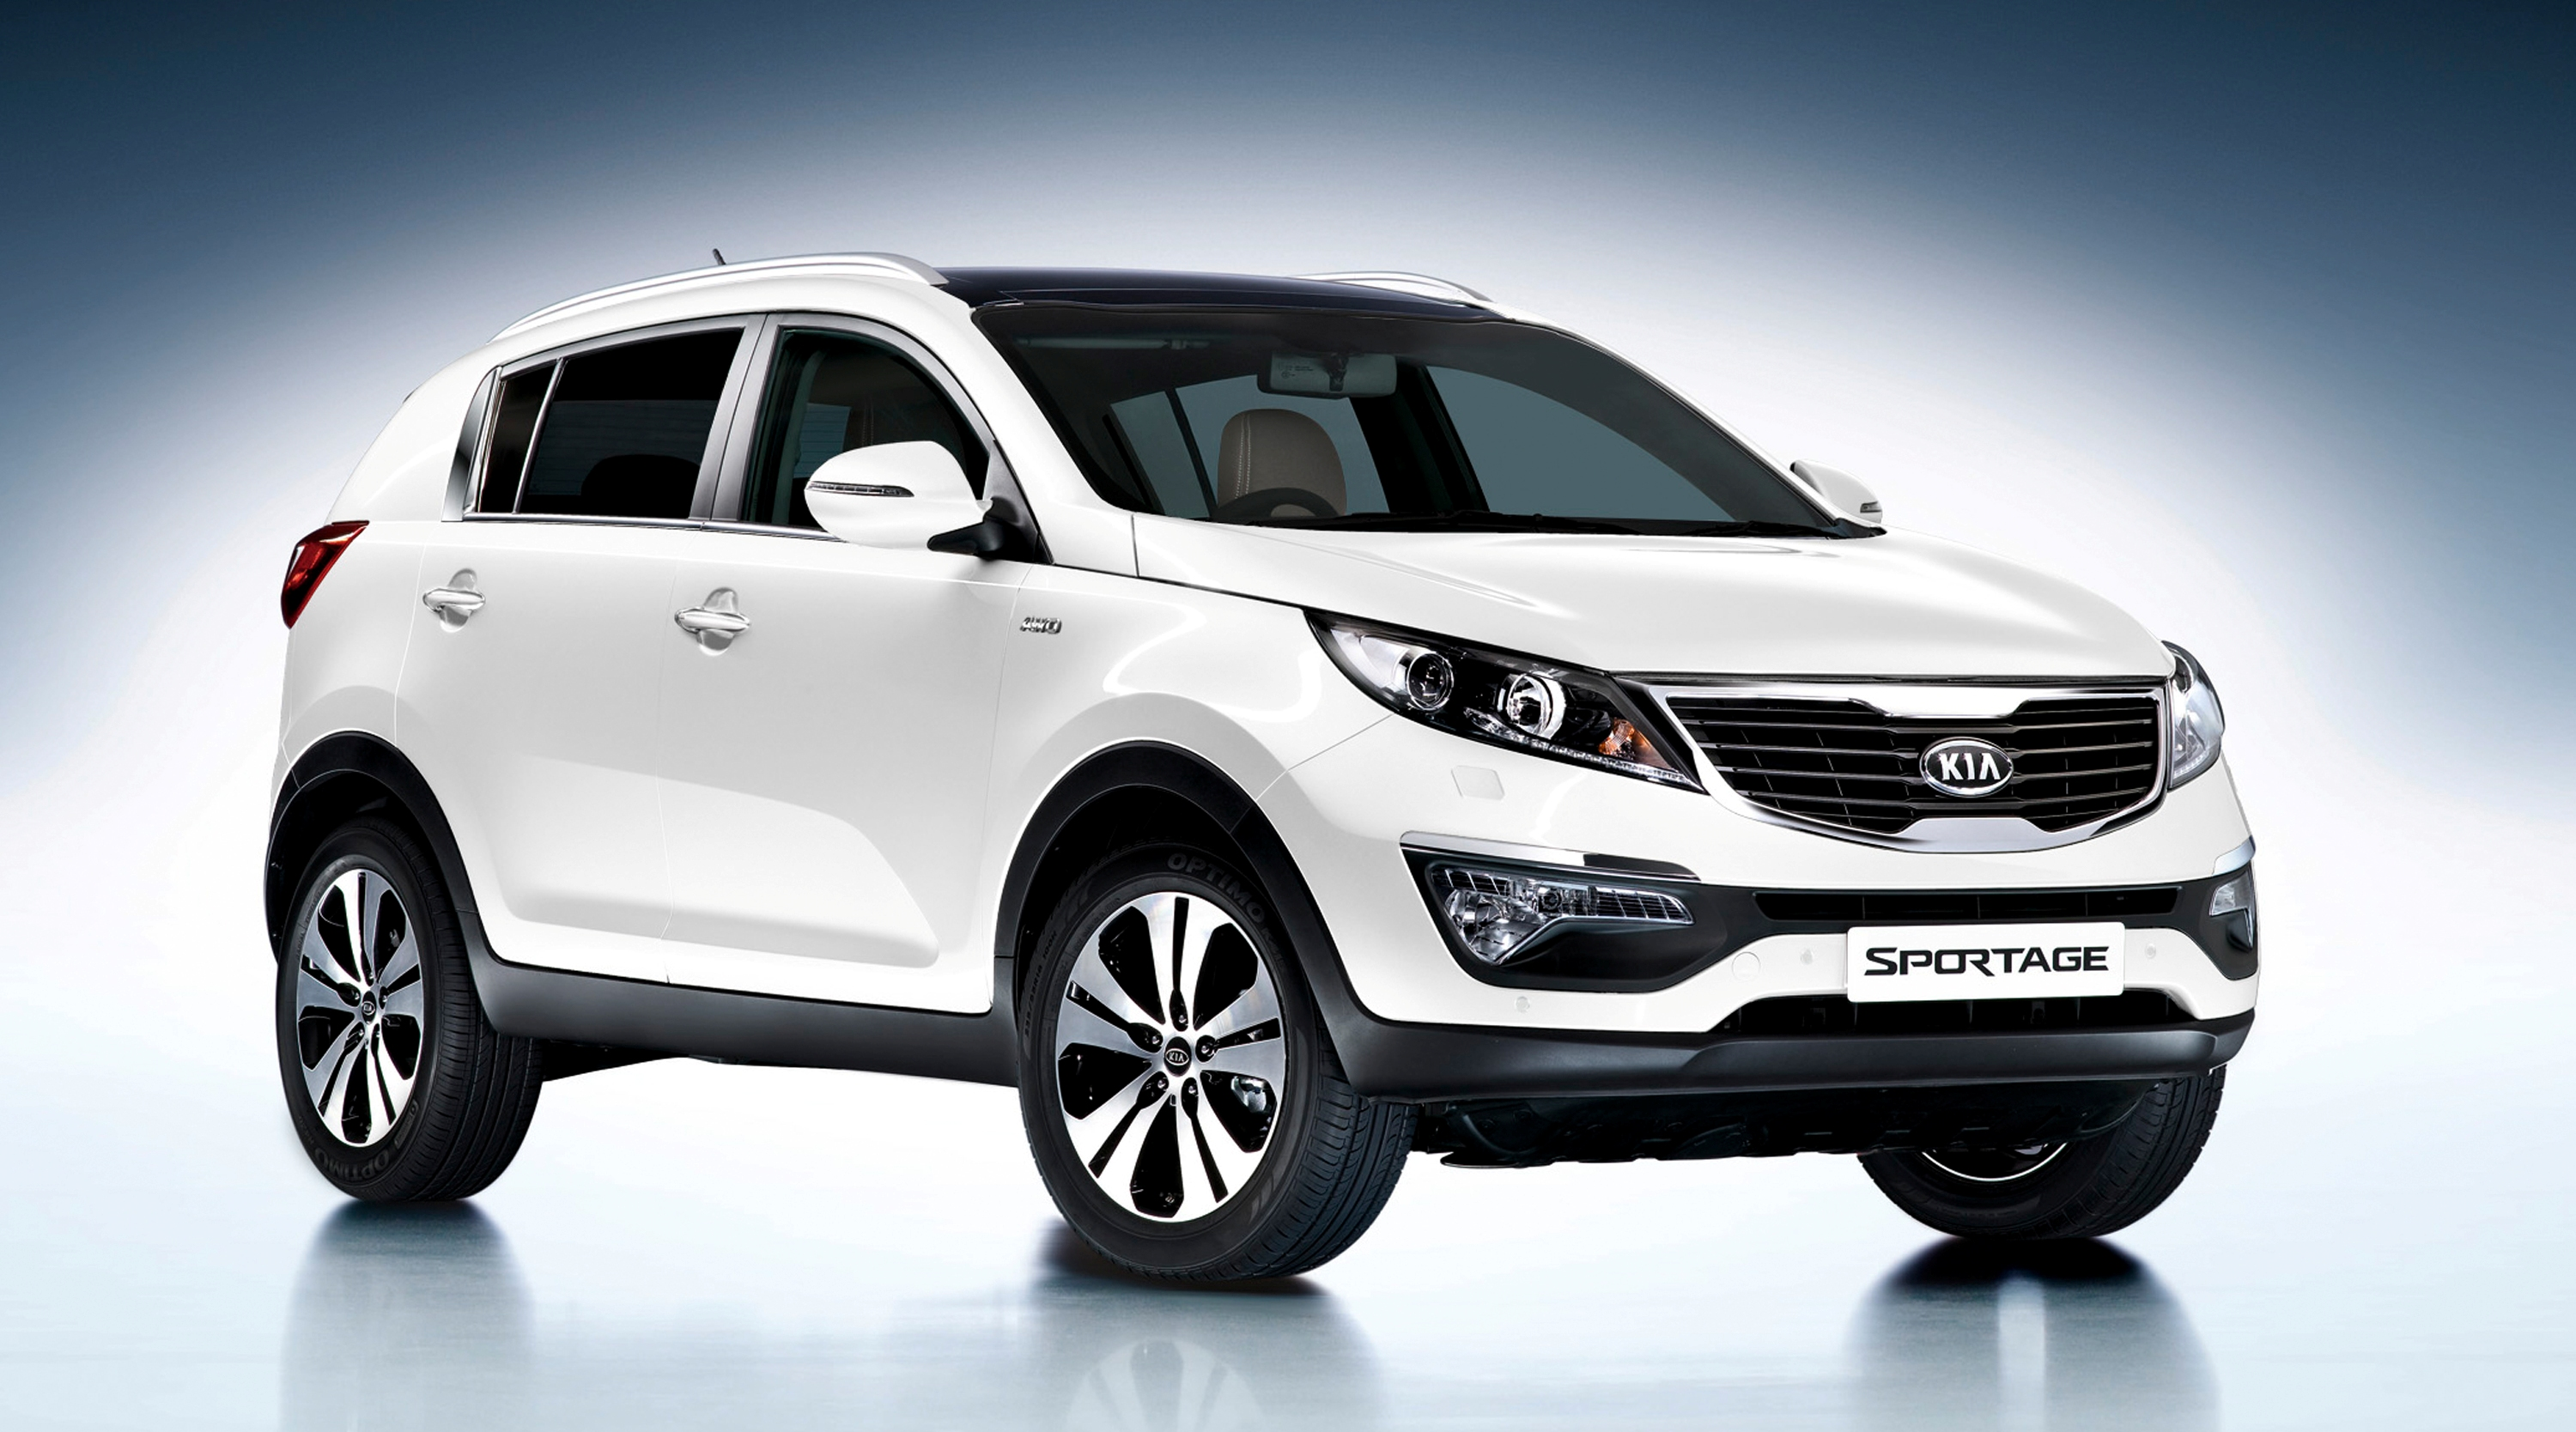 kia sportage kx 4 2 0 crdi awd car write ups. Black Bedroom Furniture Sets. Home Design Ideas